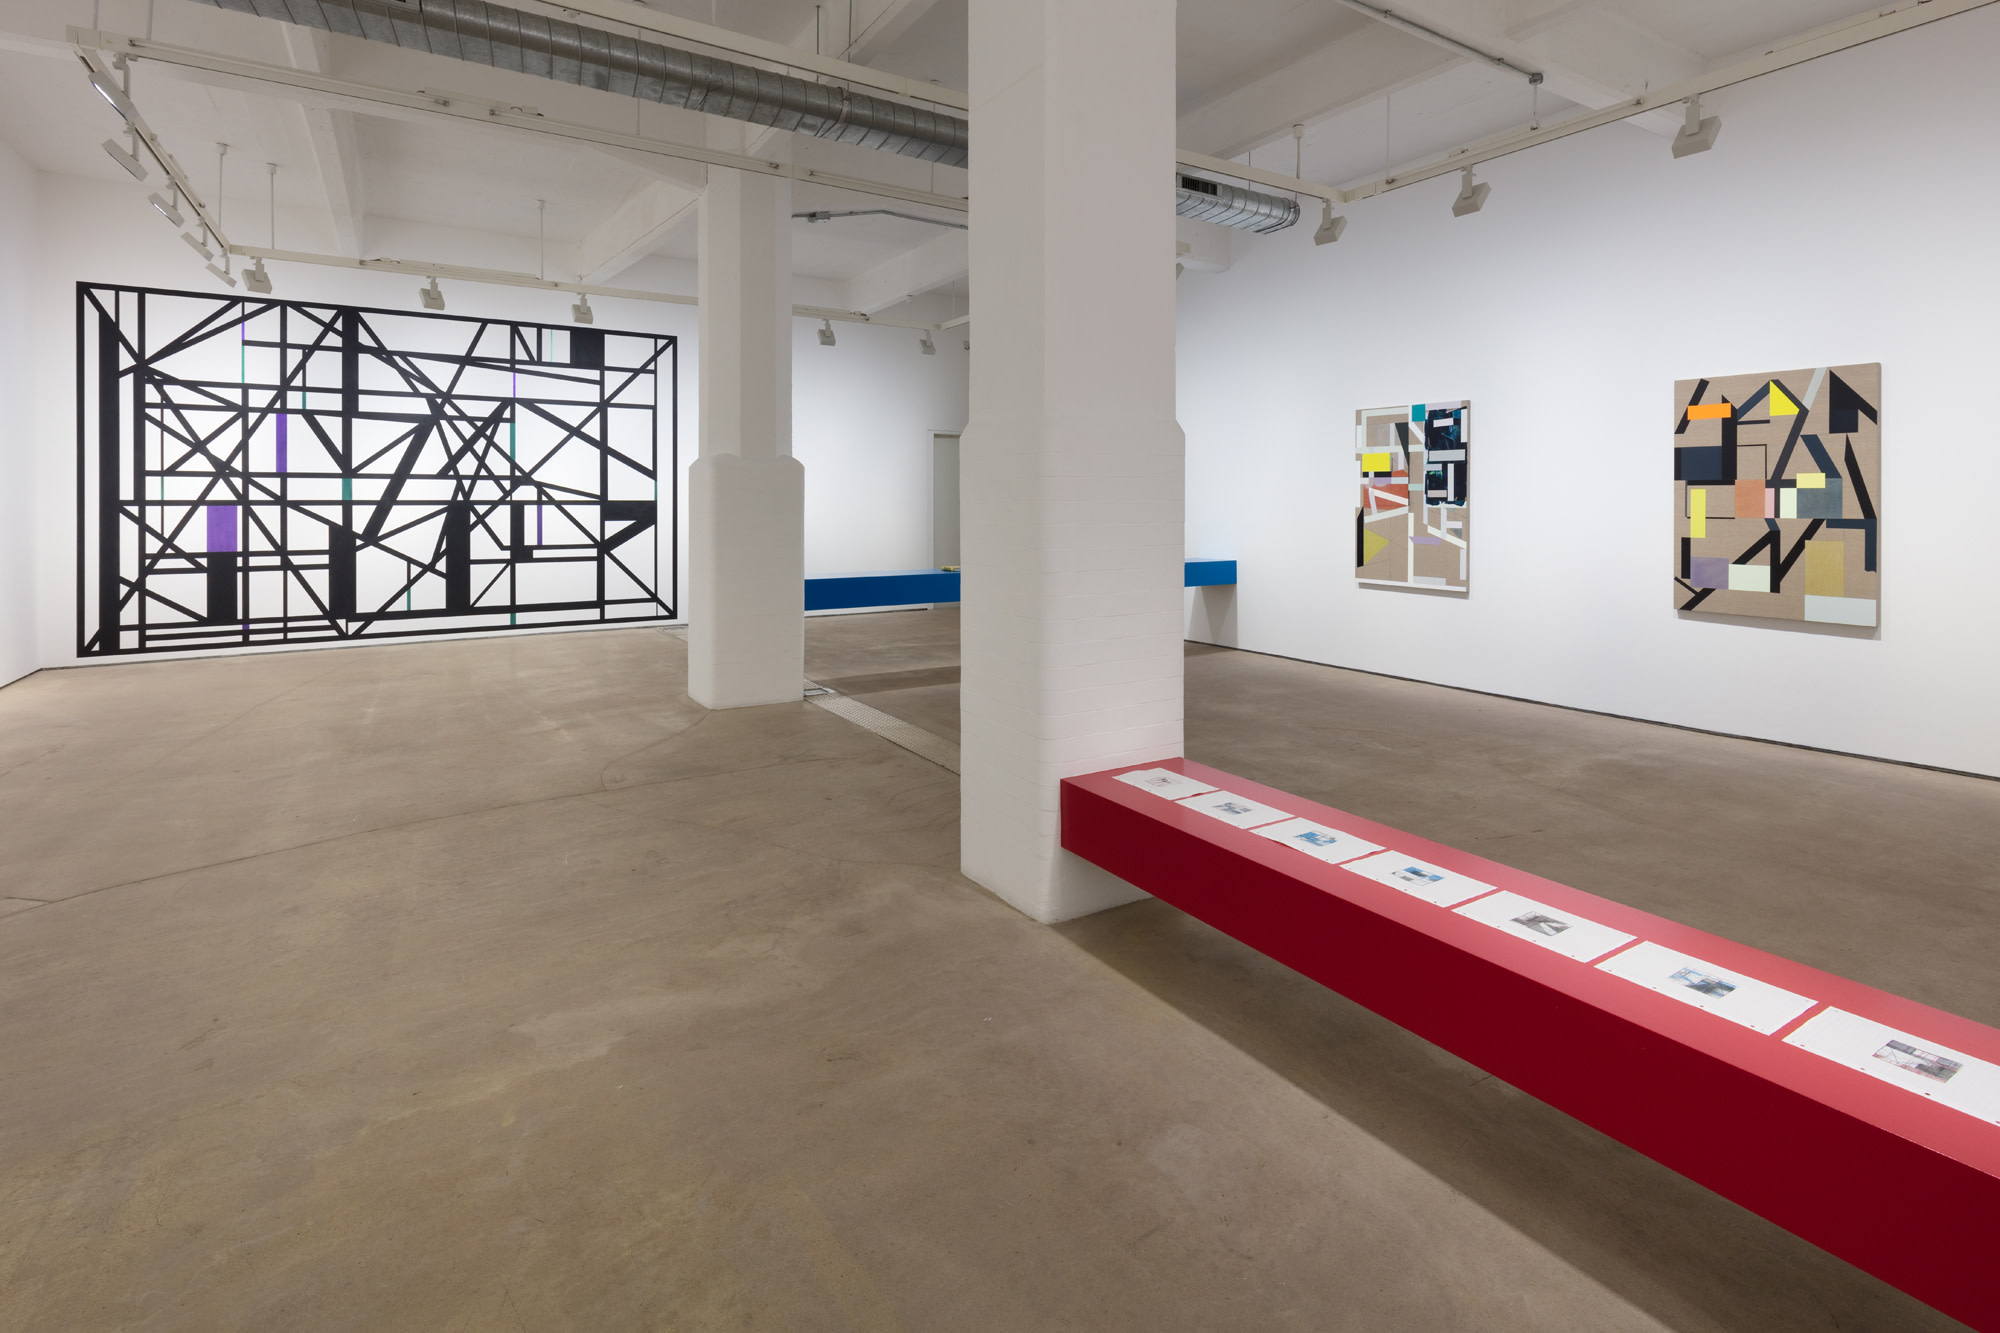 Andrew Bick, Installation view of Concrete-Disco-Systems, Hales London, 2019